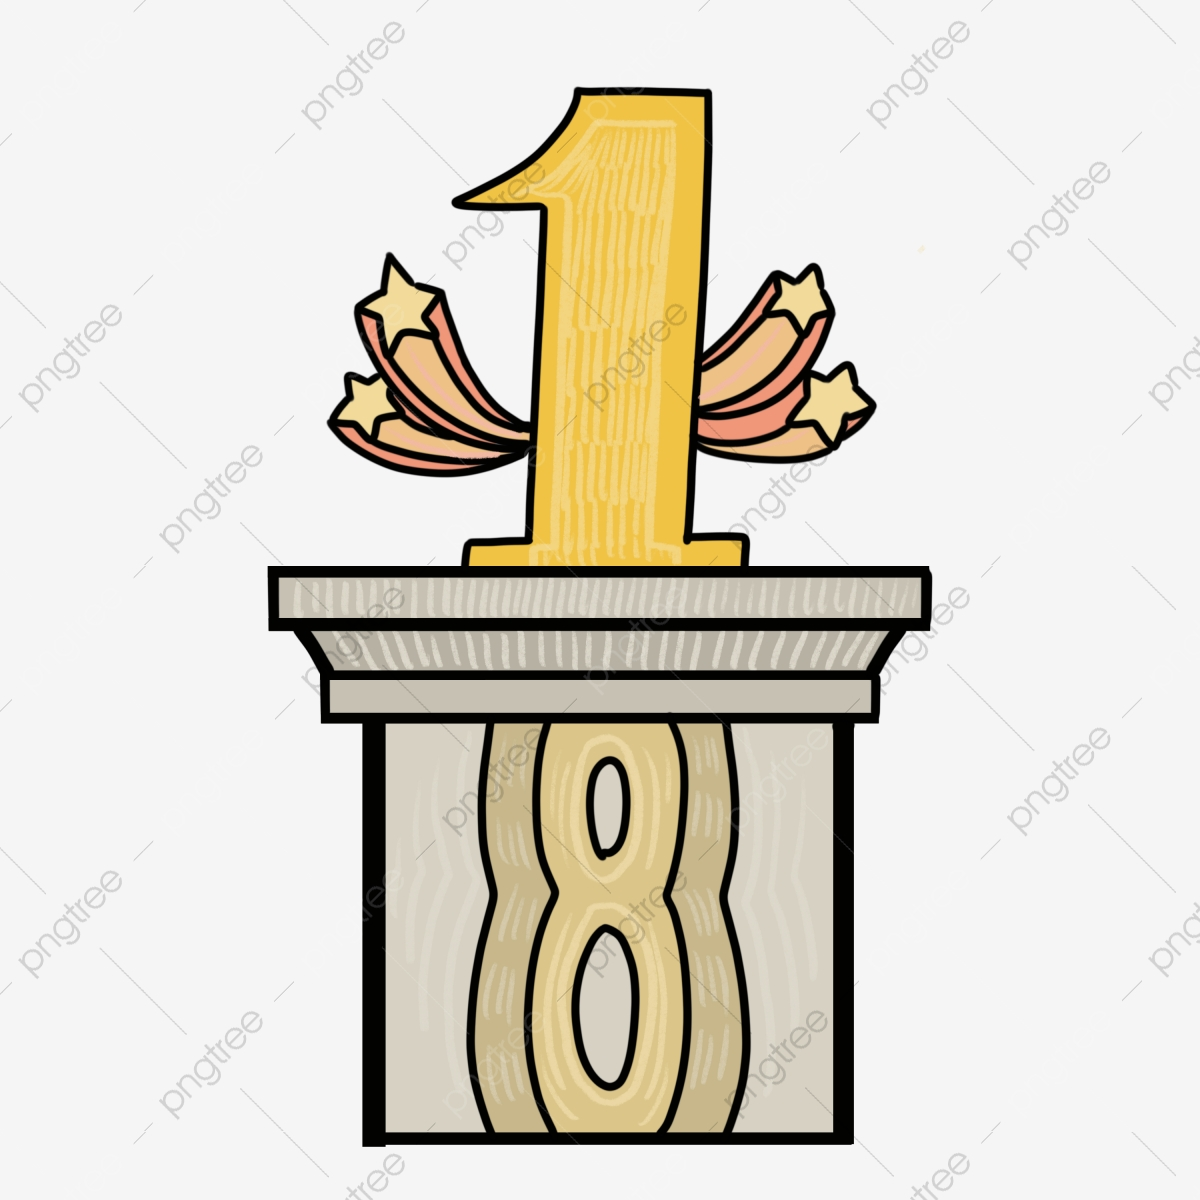 Cartoon Gold Medal, Award, Badge, 1st Place Gold Medal, Trophy, Prize,  Yellow, Symbol transparent background PNG clipart | HiClipart